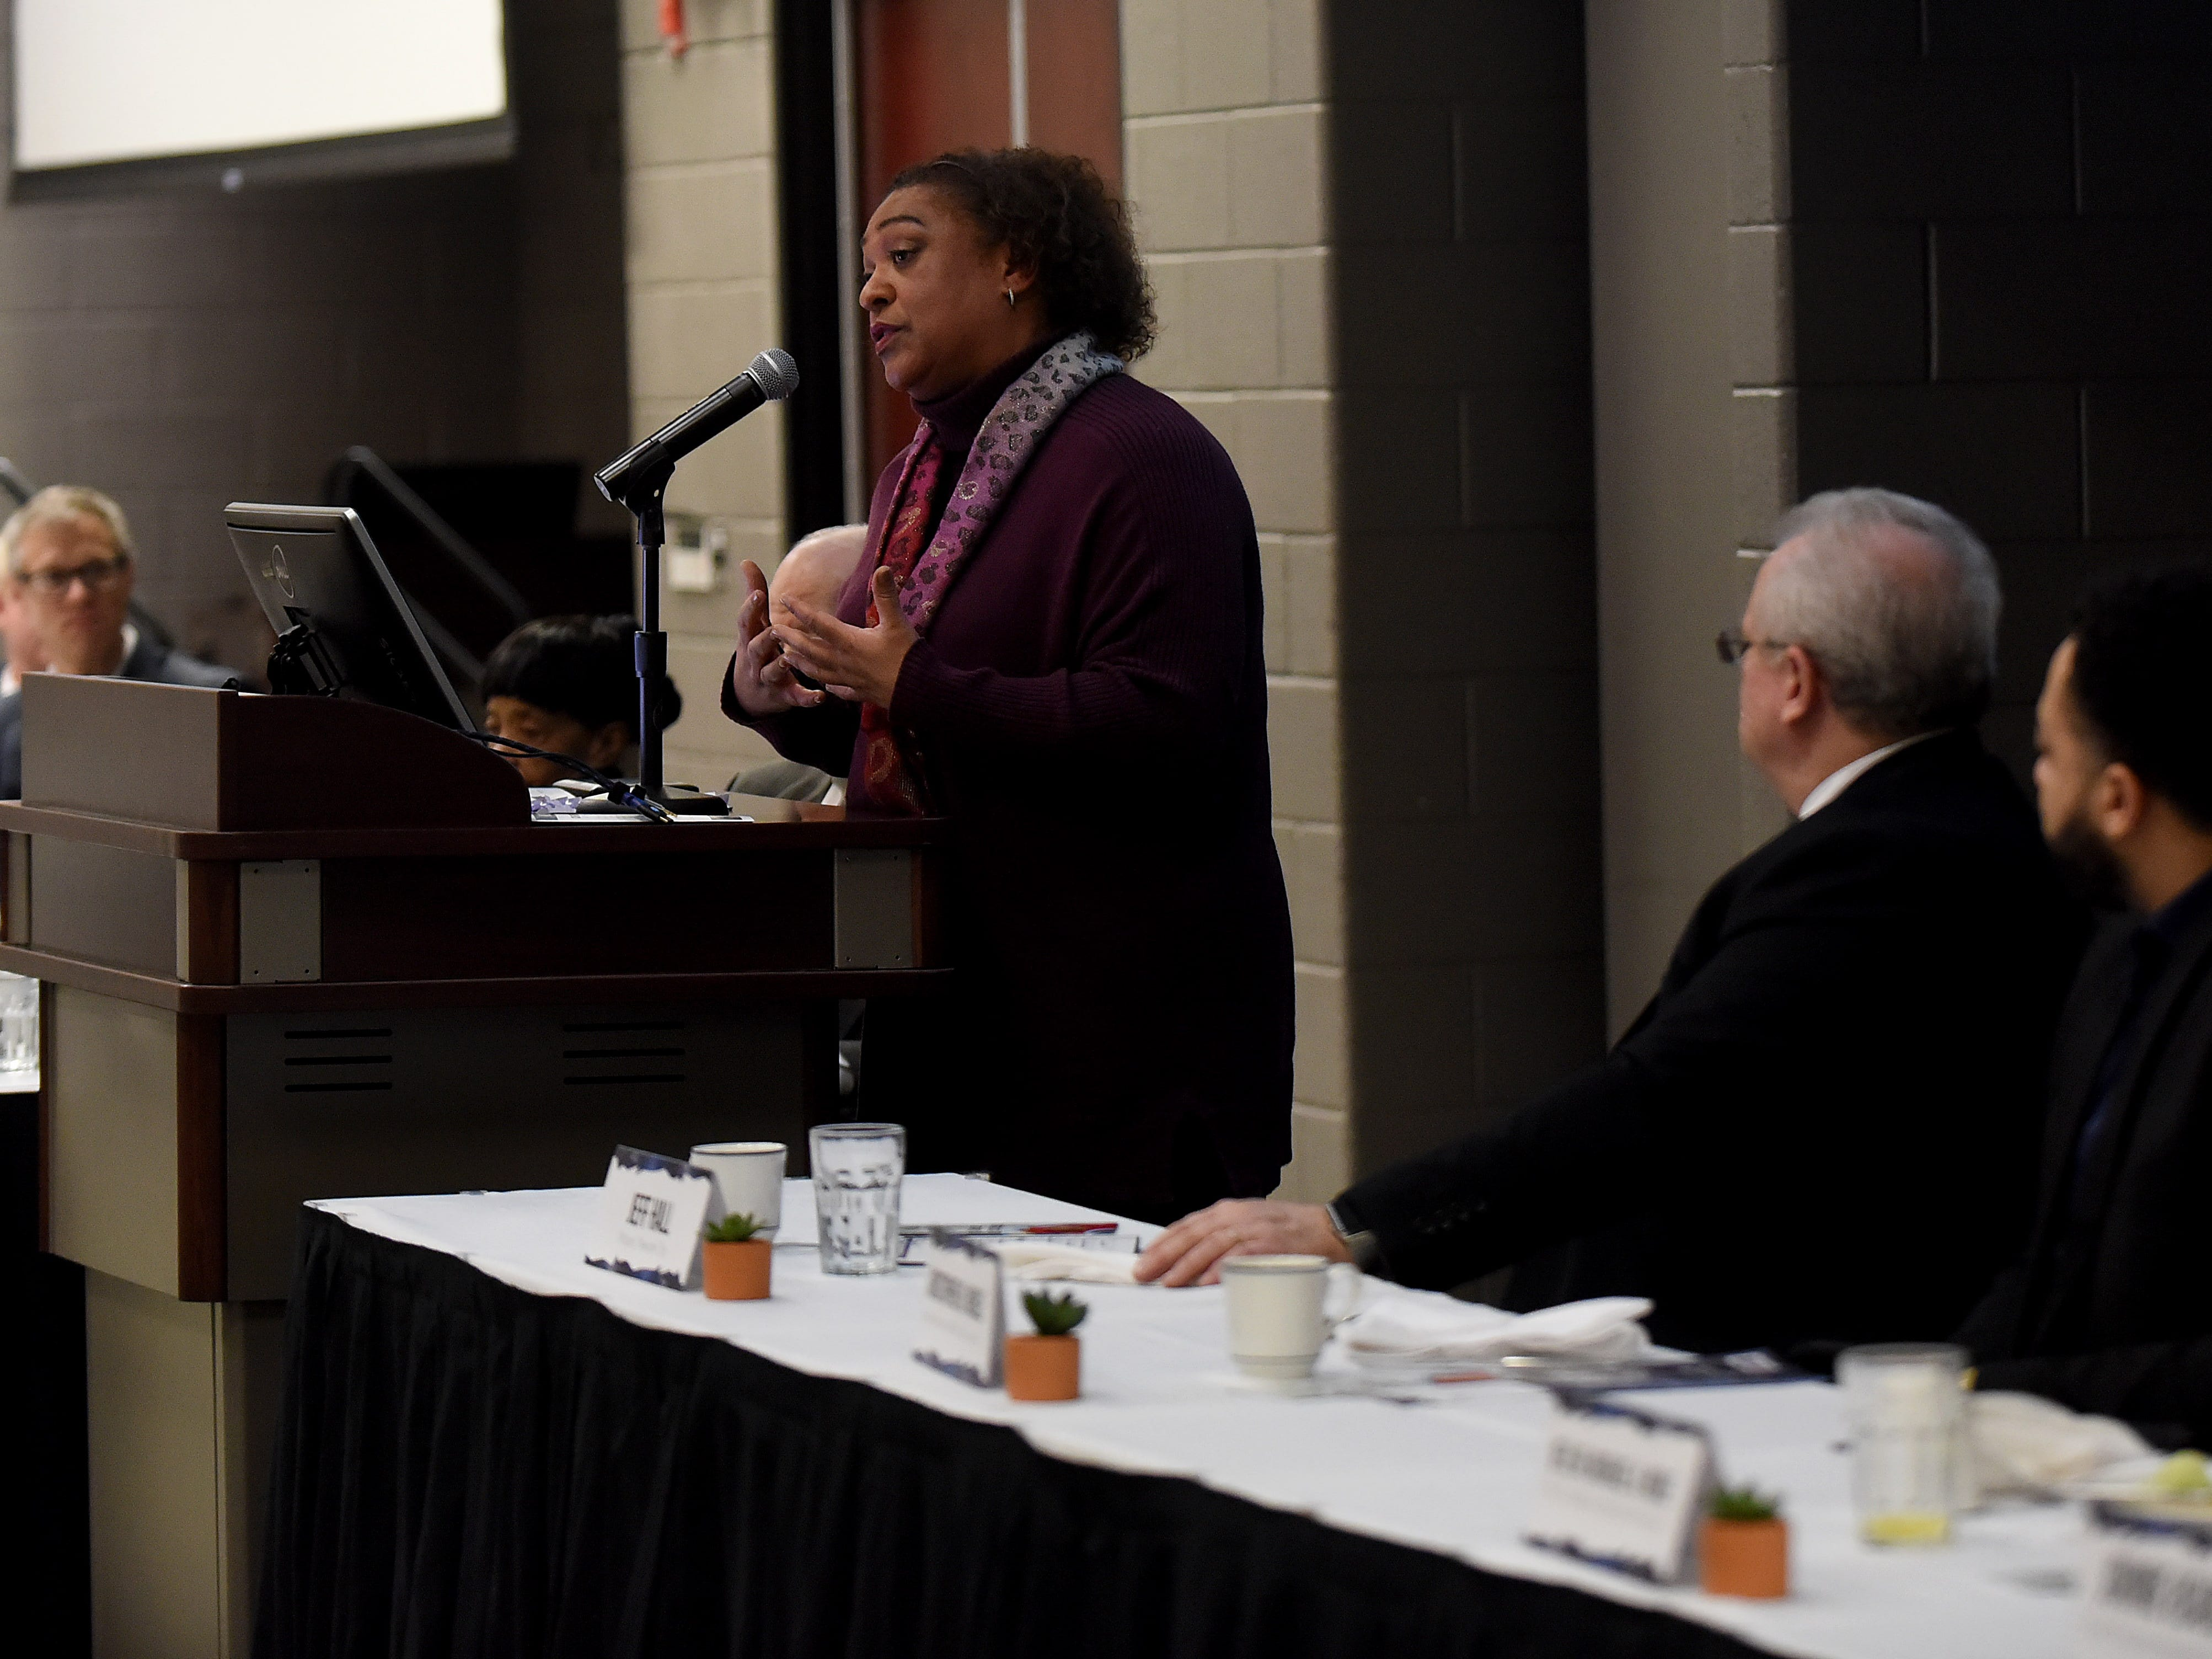 Par Excellence Academy superintendent Gisele James talks about her pride in the community school's students during the school's annual Martin Luther King Jr. Day breakfast at the John Gilbert Reese Center on the campus of OSU Newark.